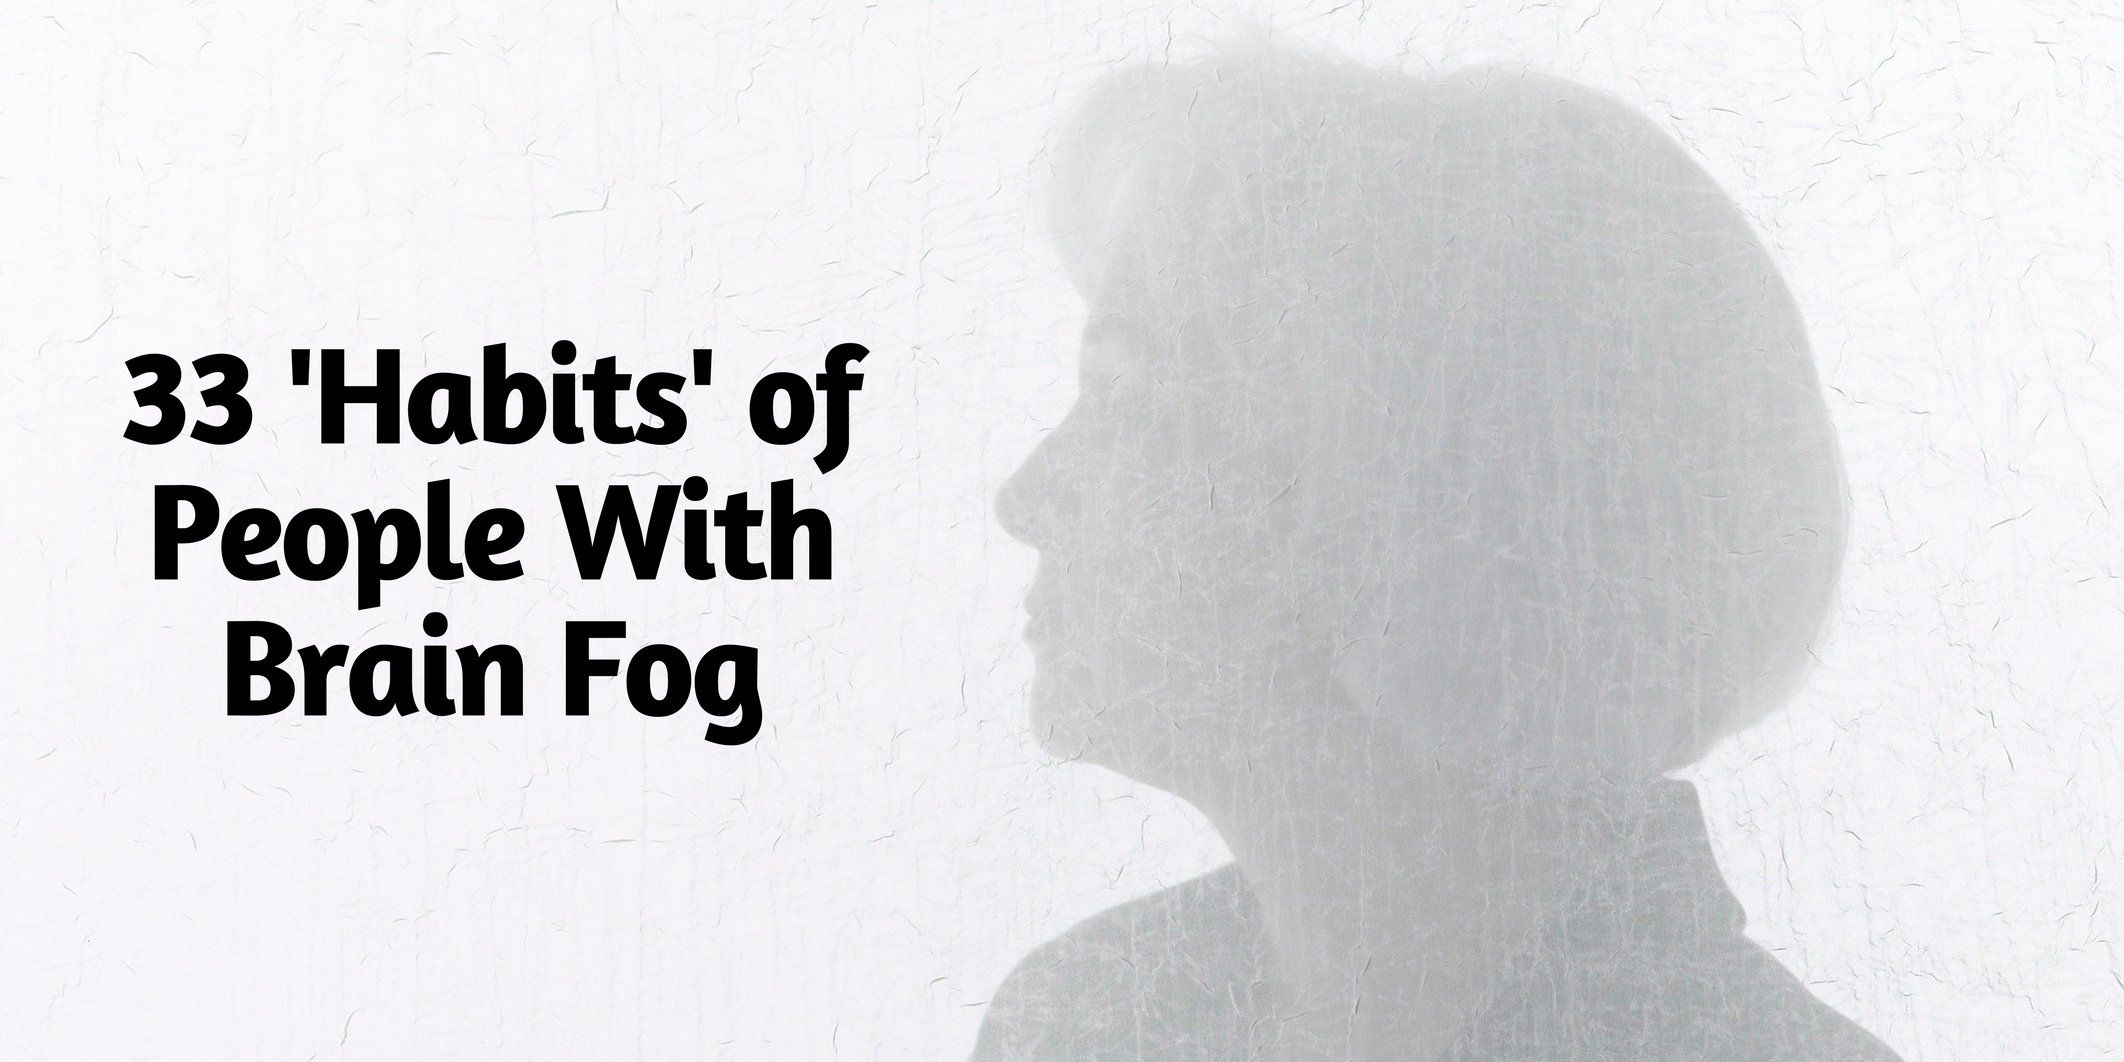 33 'Habits' of People With Brain Fog | Brain fog ...